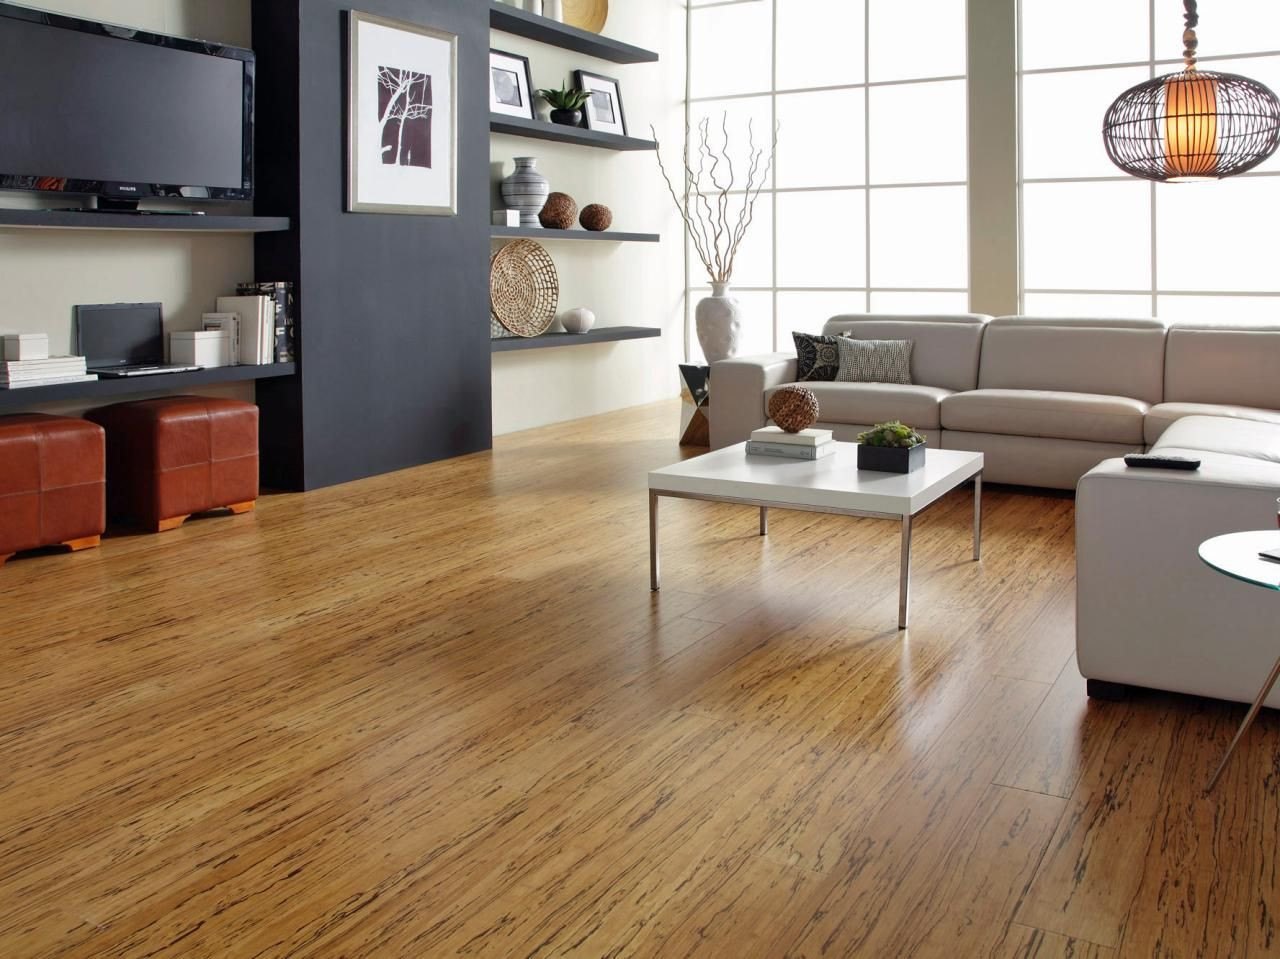 hgtv hardwood flooring ideas of 8 flooring trends to try bamboo floor hgtv and interiors with 8 flooring trends to try